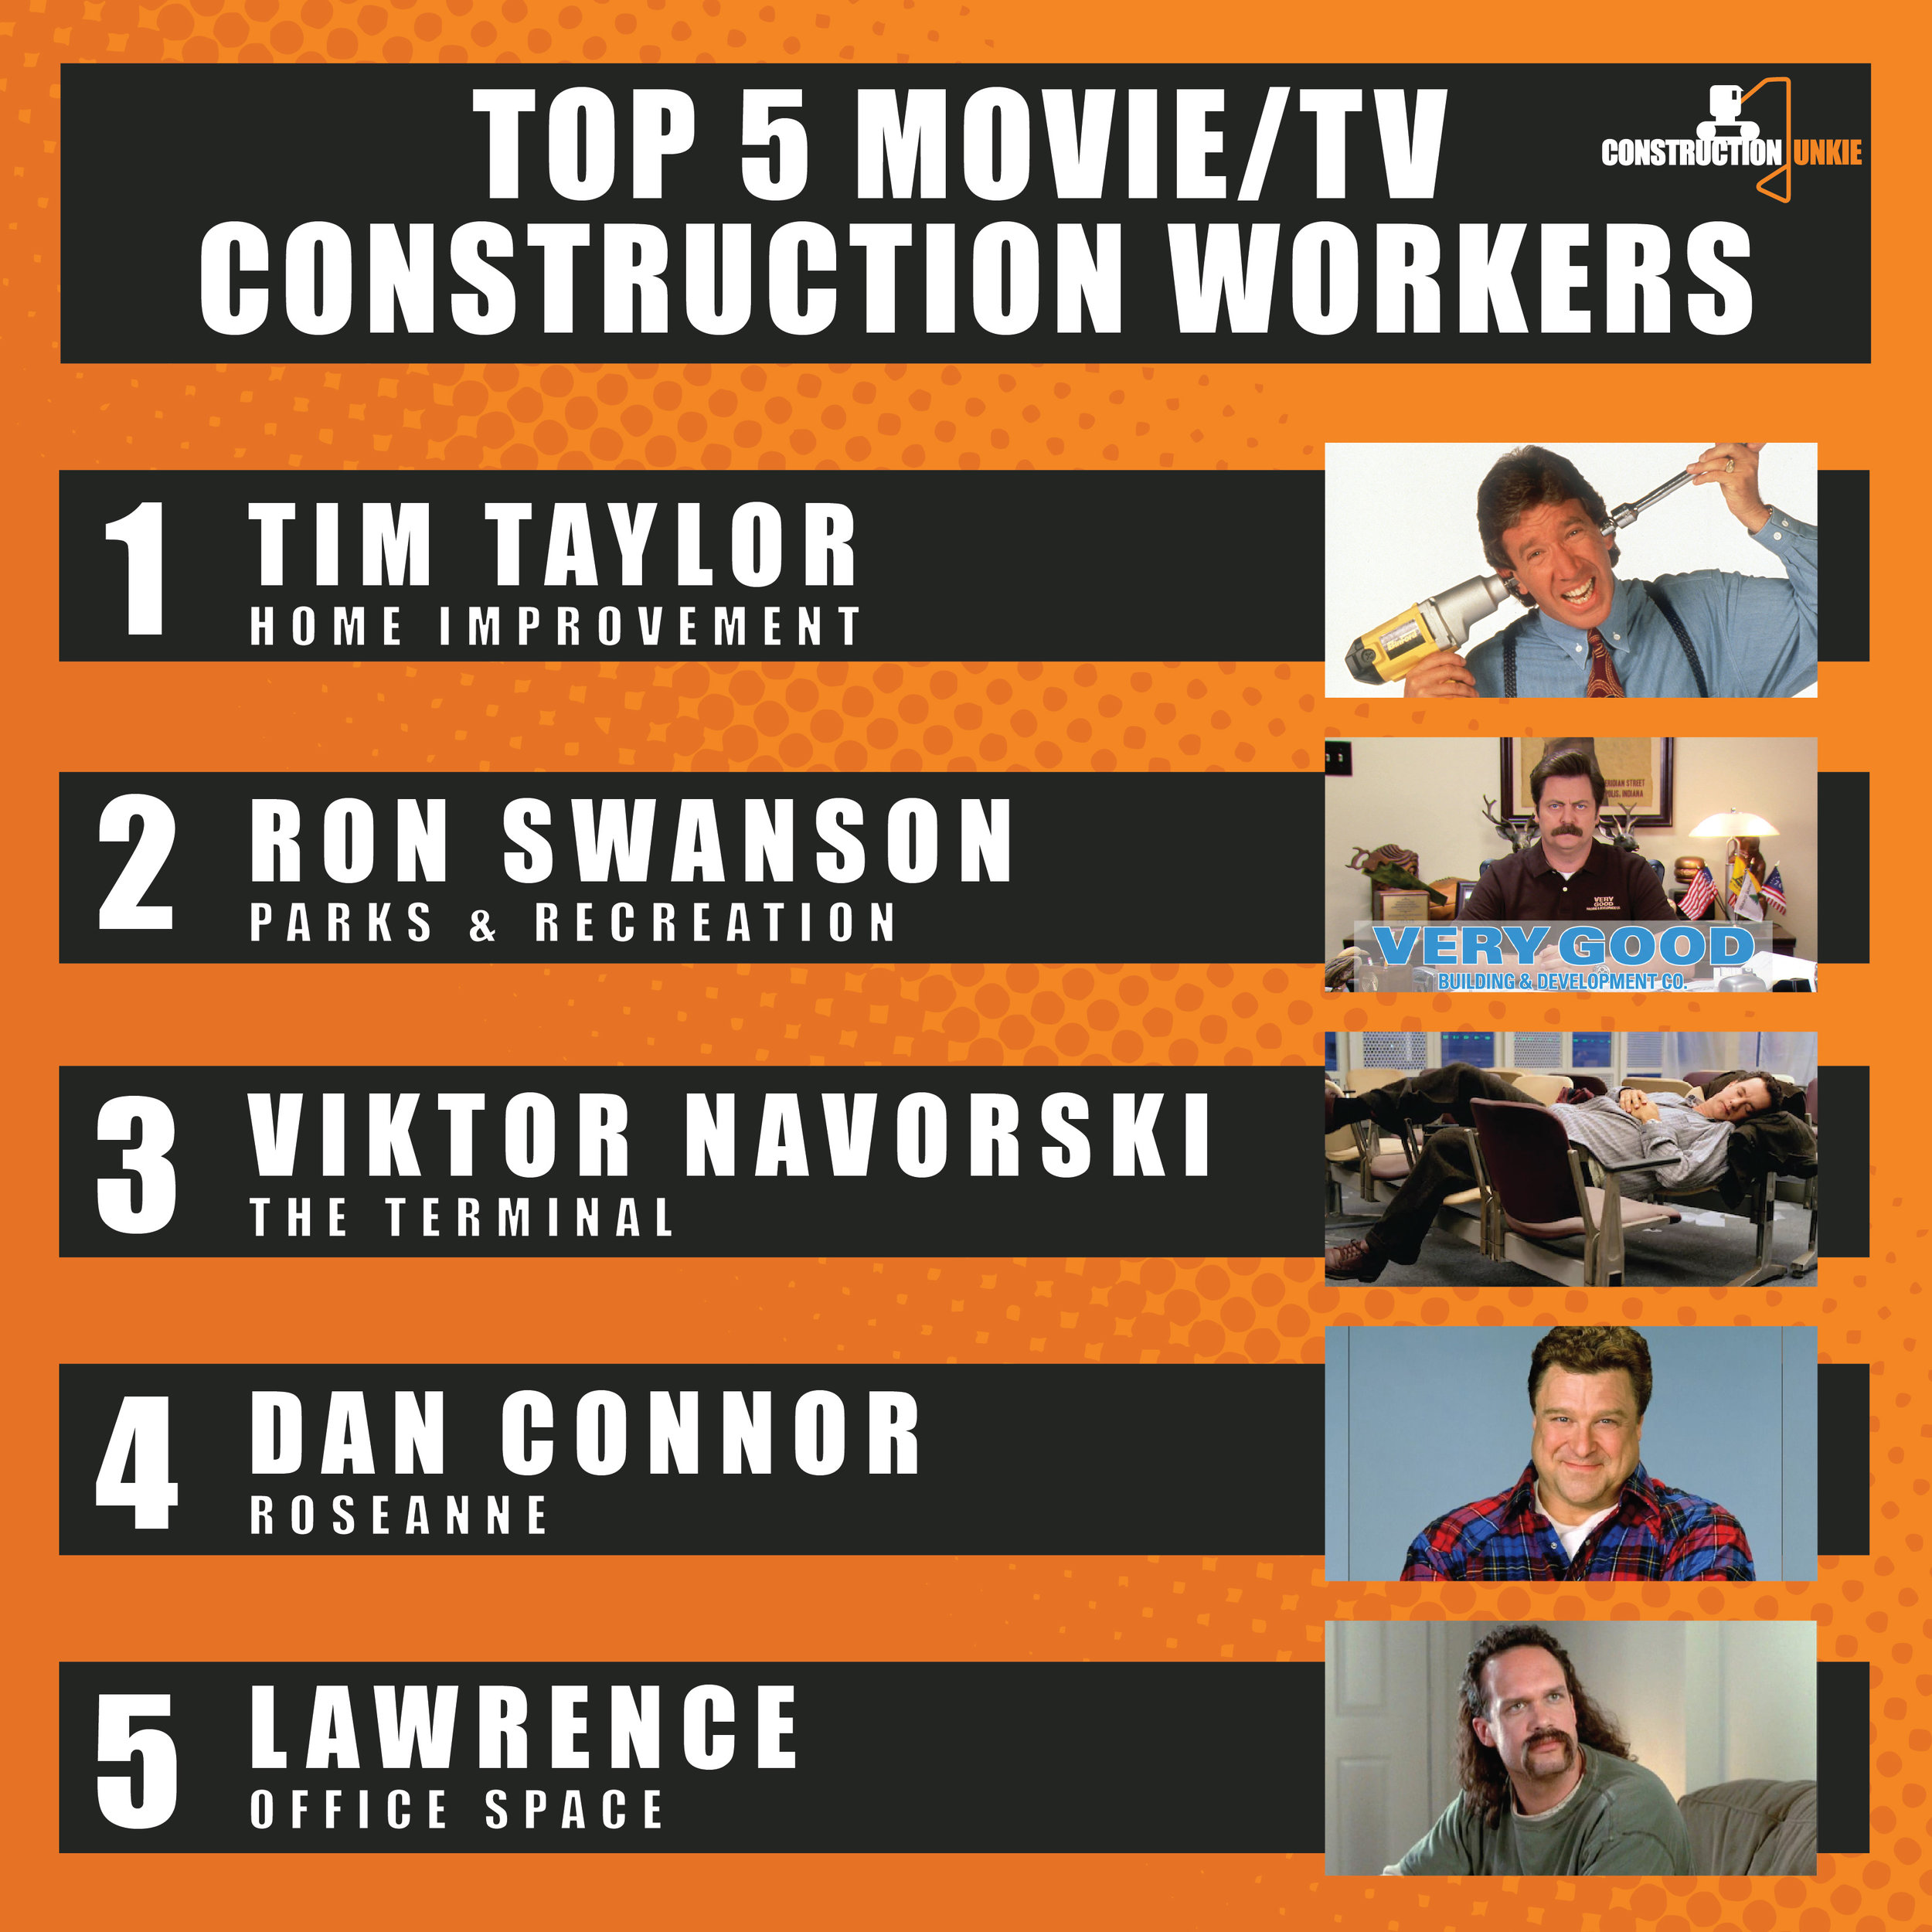 "1. Tim ""the Tool Man"" Taylor (Home Improvement) 2. Ron Swanson (Parks & Recreation) 3. Viktor Navorski (The Terminal) 4. Dan Connor (Roseanne) 5. Lawrence (Office Space)"